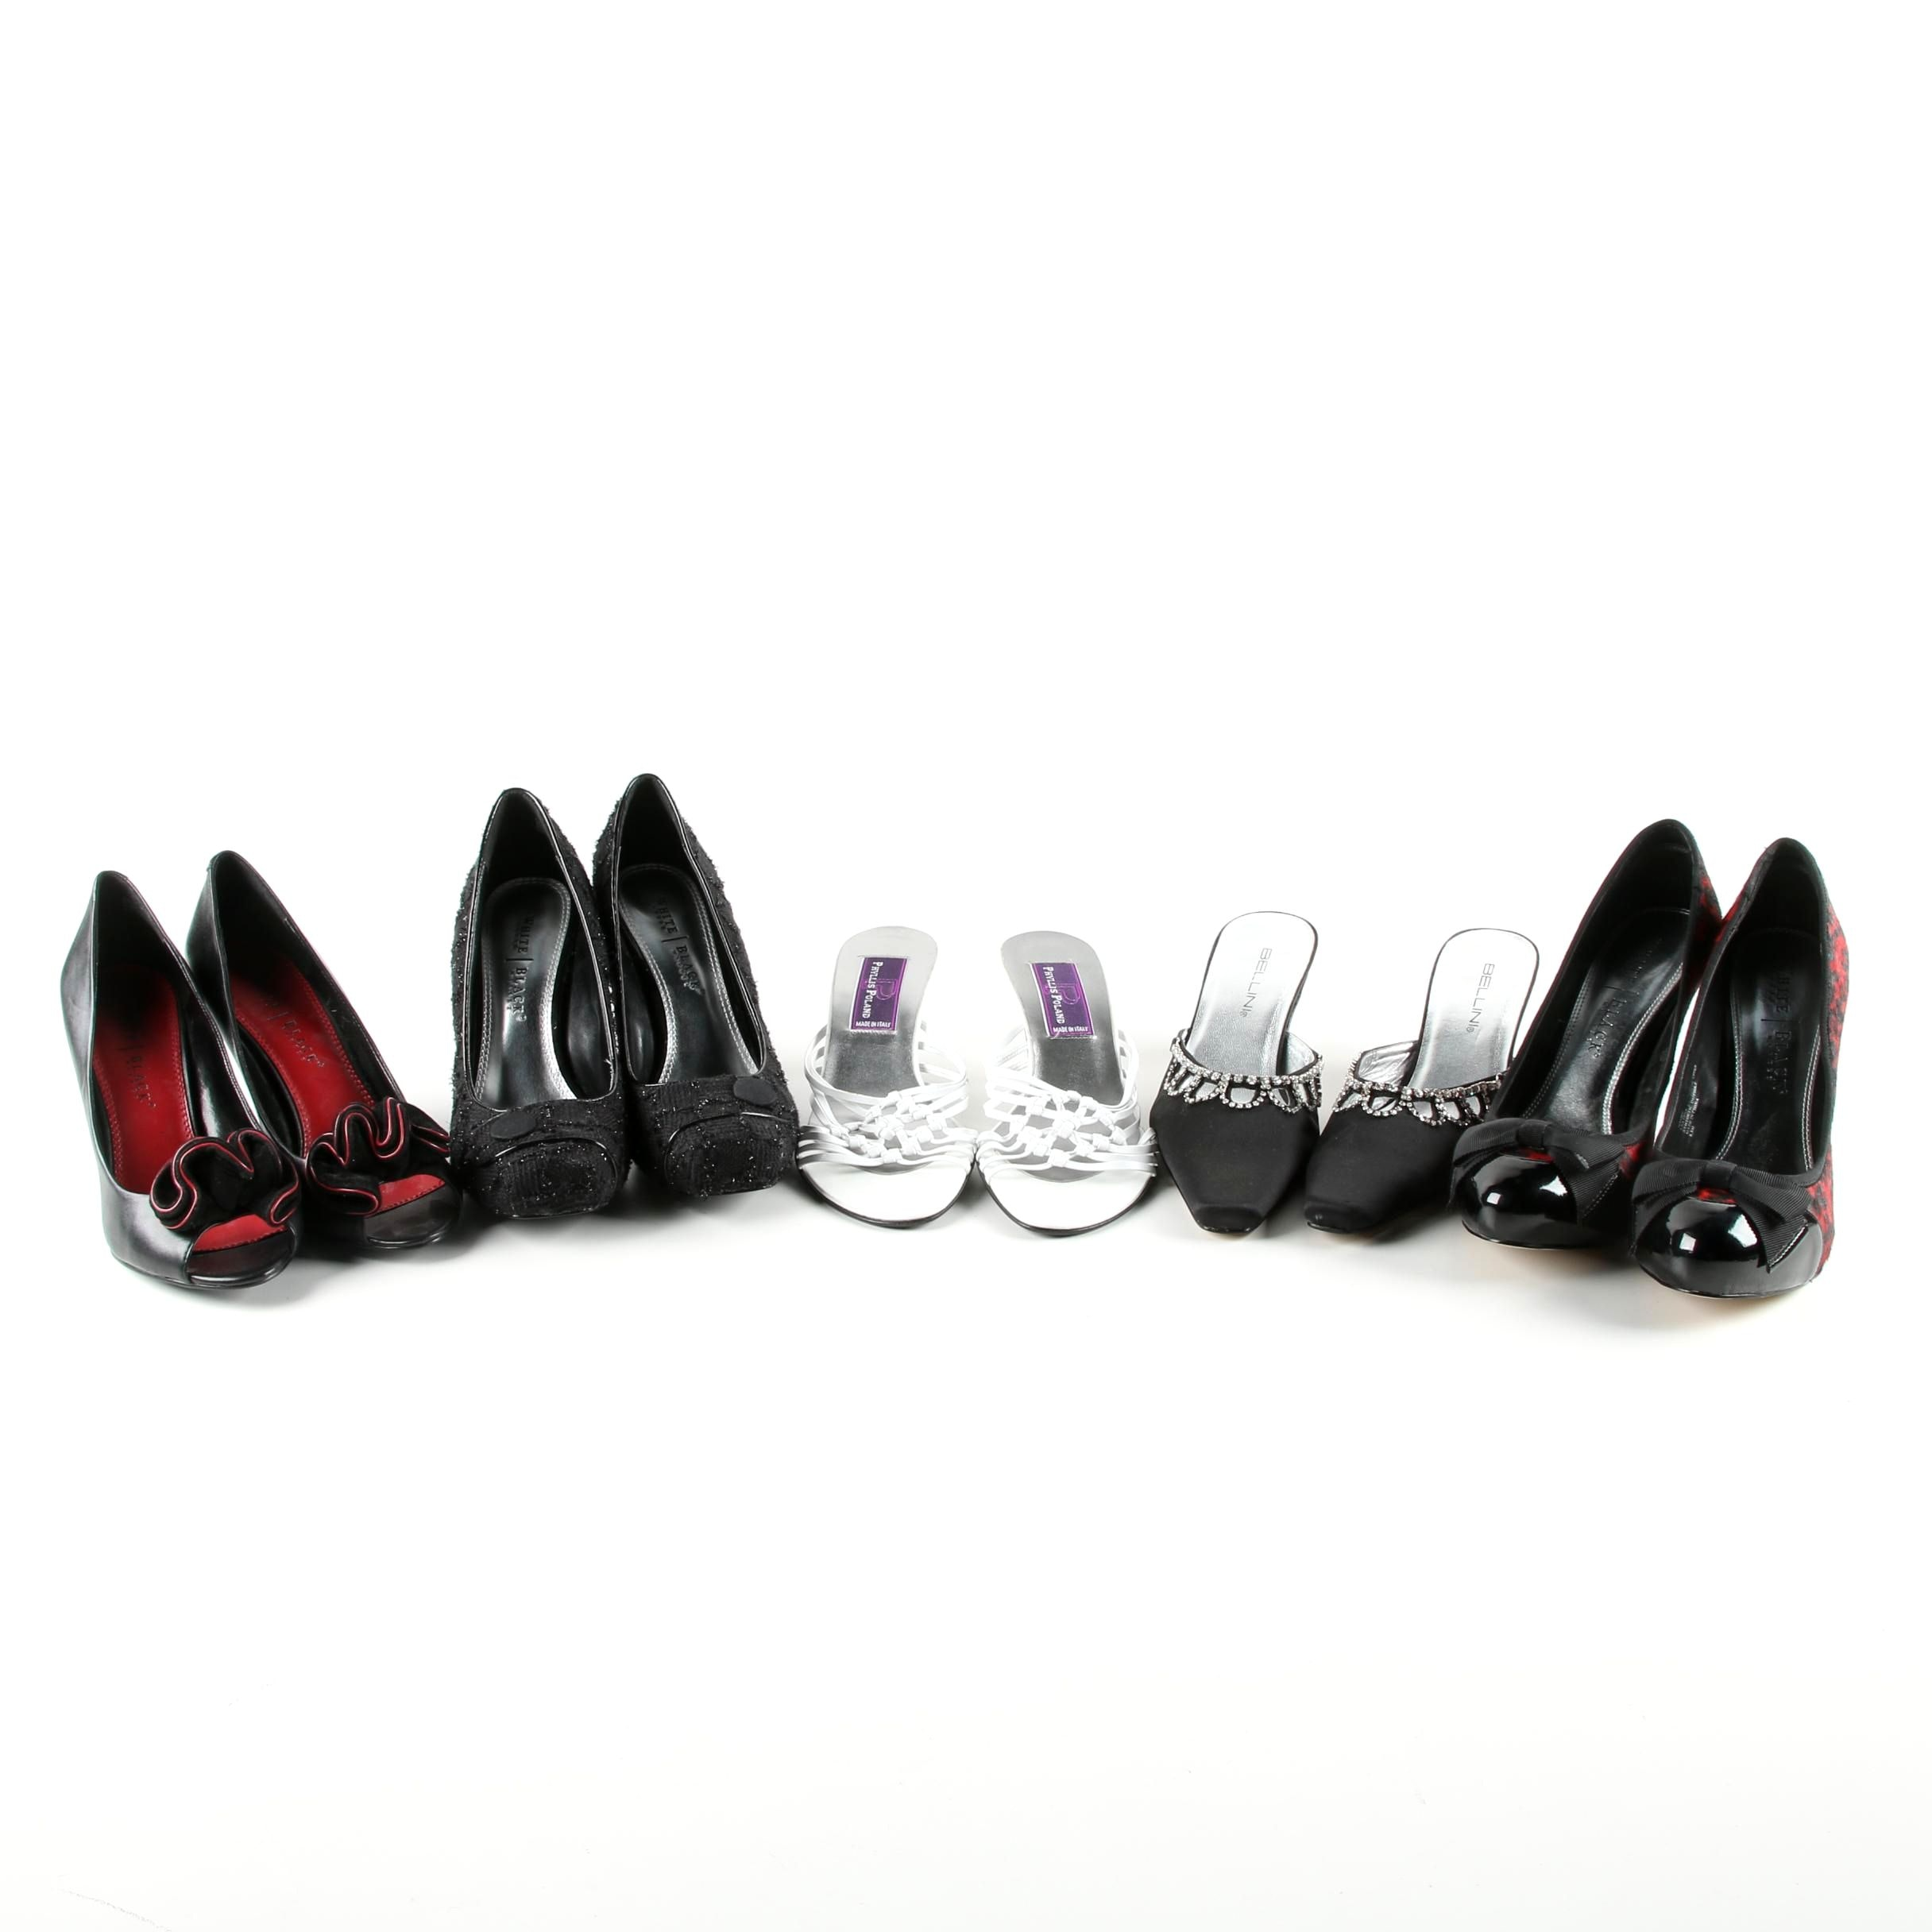 Women's Heels Including Bellini and White House Black Market